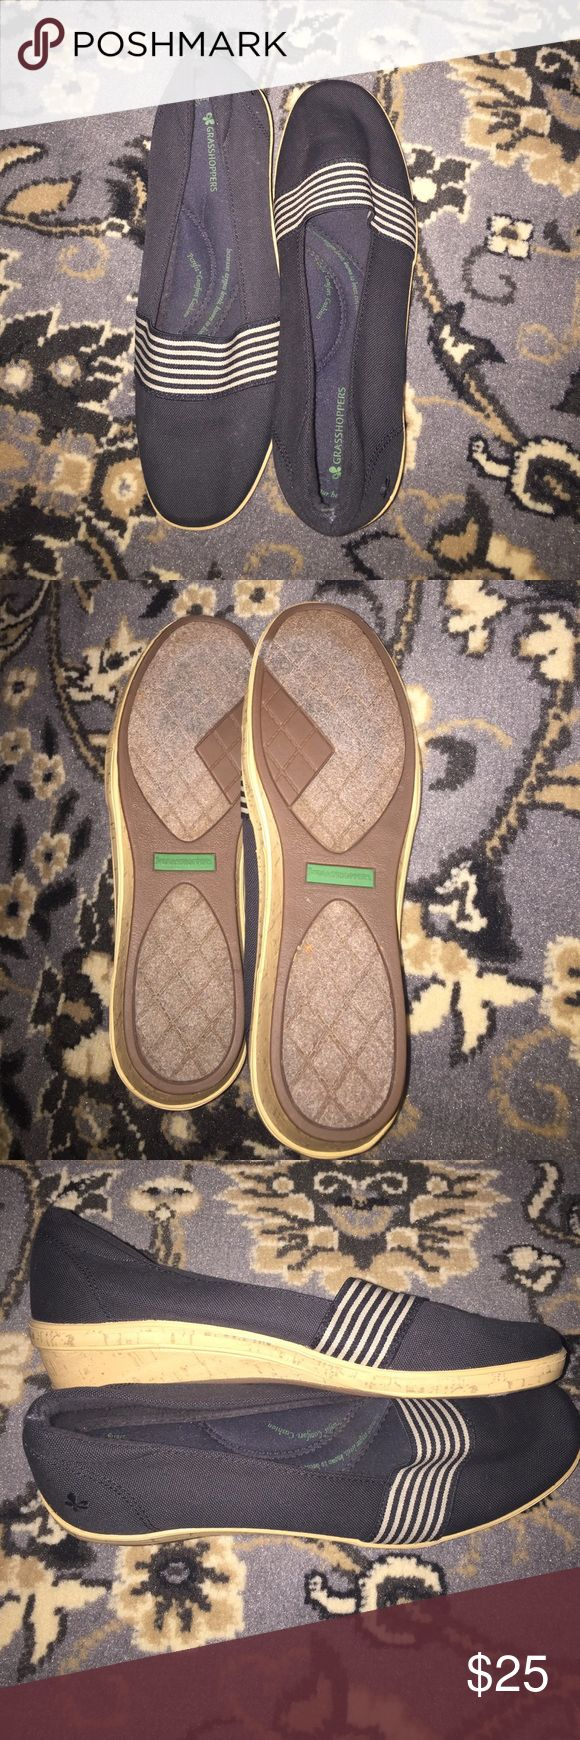 "Grasshoppers wedge loafers EUC loafers by Grasshoppers with small wedge heel (approx 1""). You cannot tell these have worn at all! They have black and cream stripe detail and so much cushion inside! Size 9. Grasshoppers  Shoes Flats & Loafers"